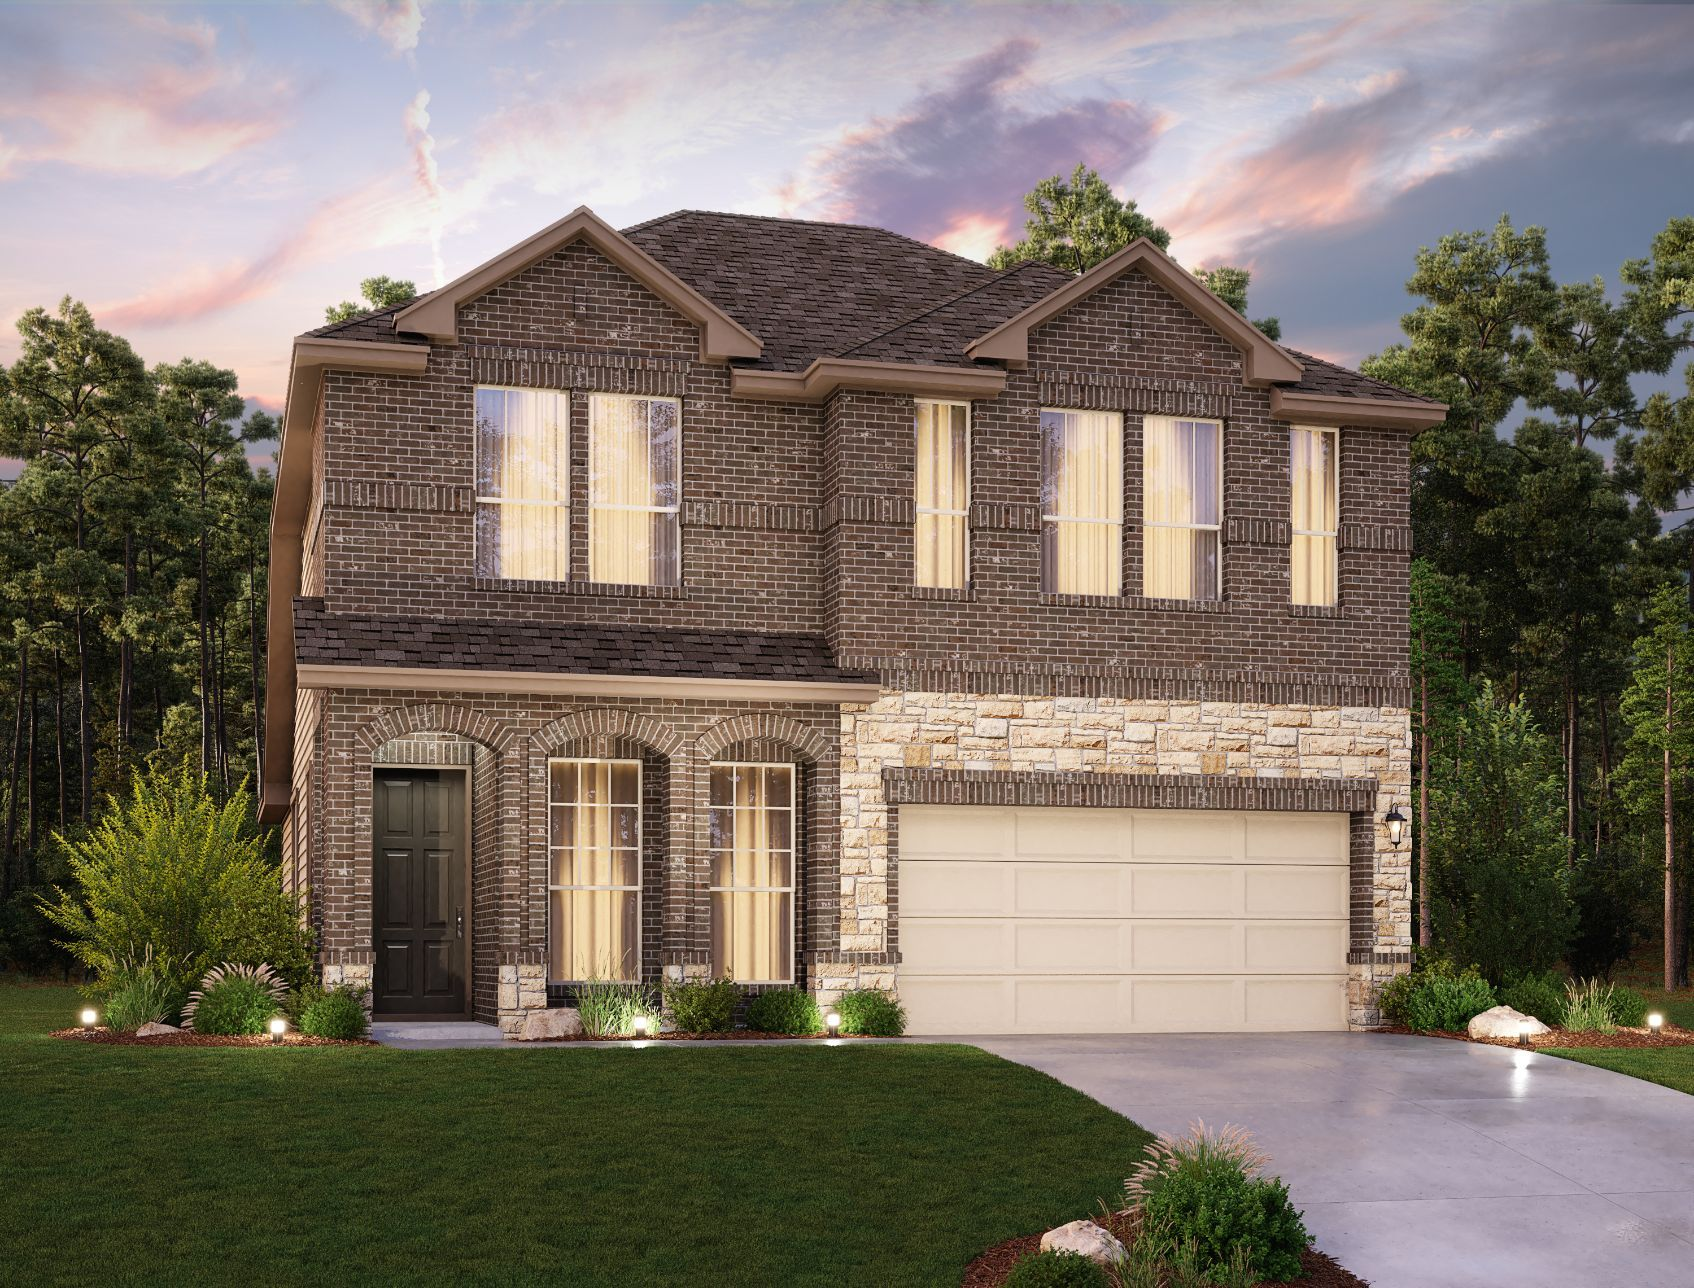 Exterior:2109 Sand Lily Drive Elevation Image 1